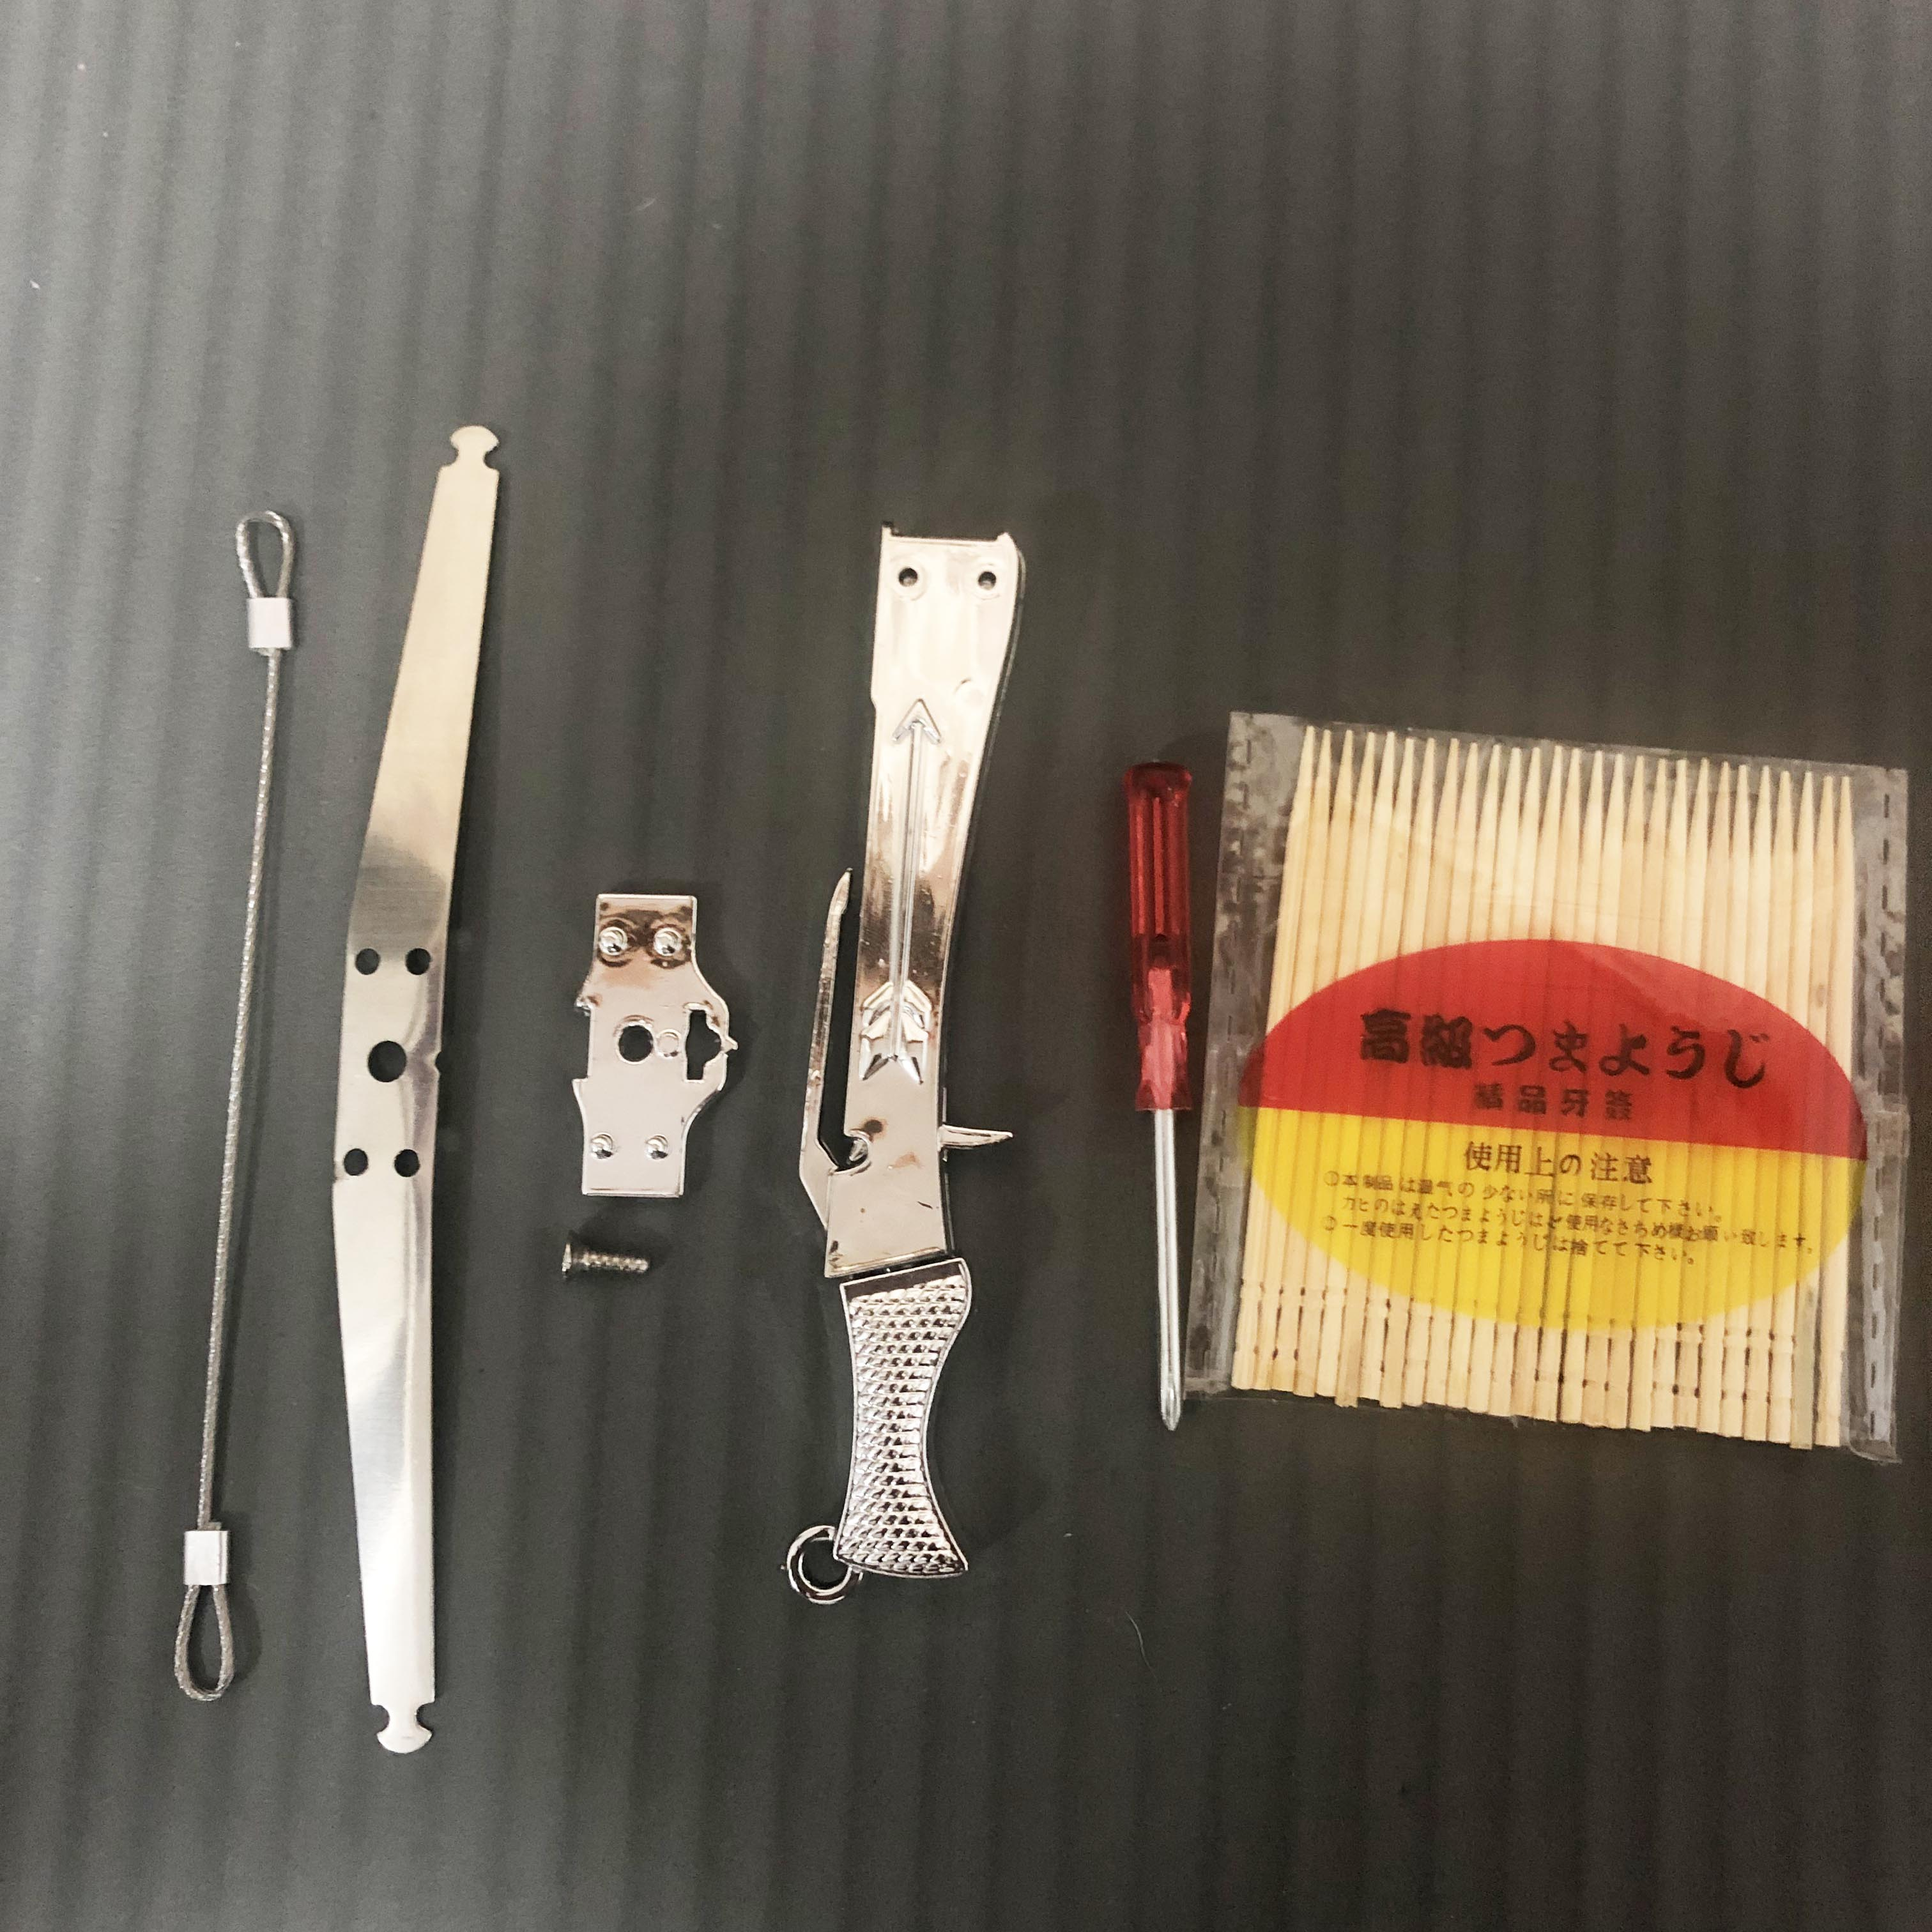 Elastic Toy One Set Of Car Decoration For Put The Car Front Desk Or Get Model Mini Shot Arrow Toy Including Wrench